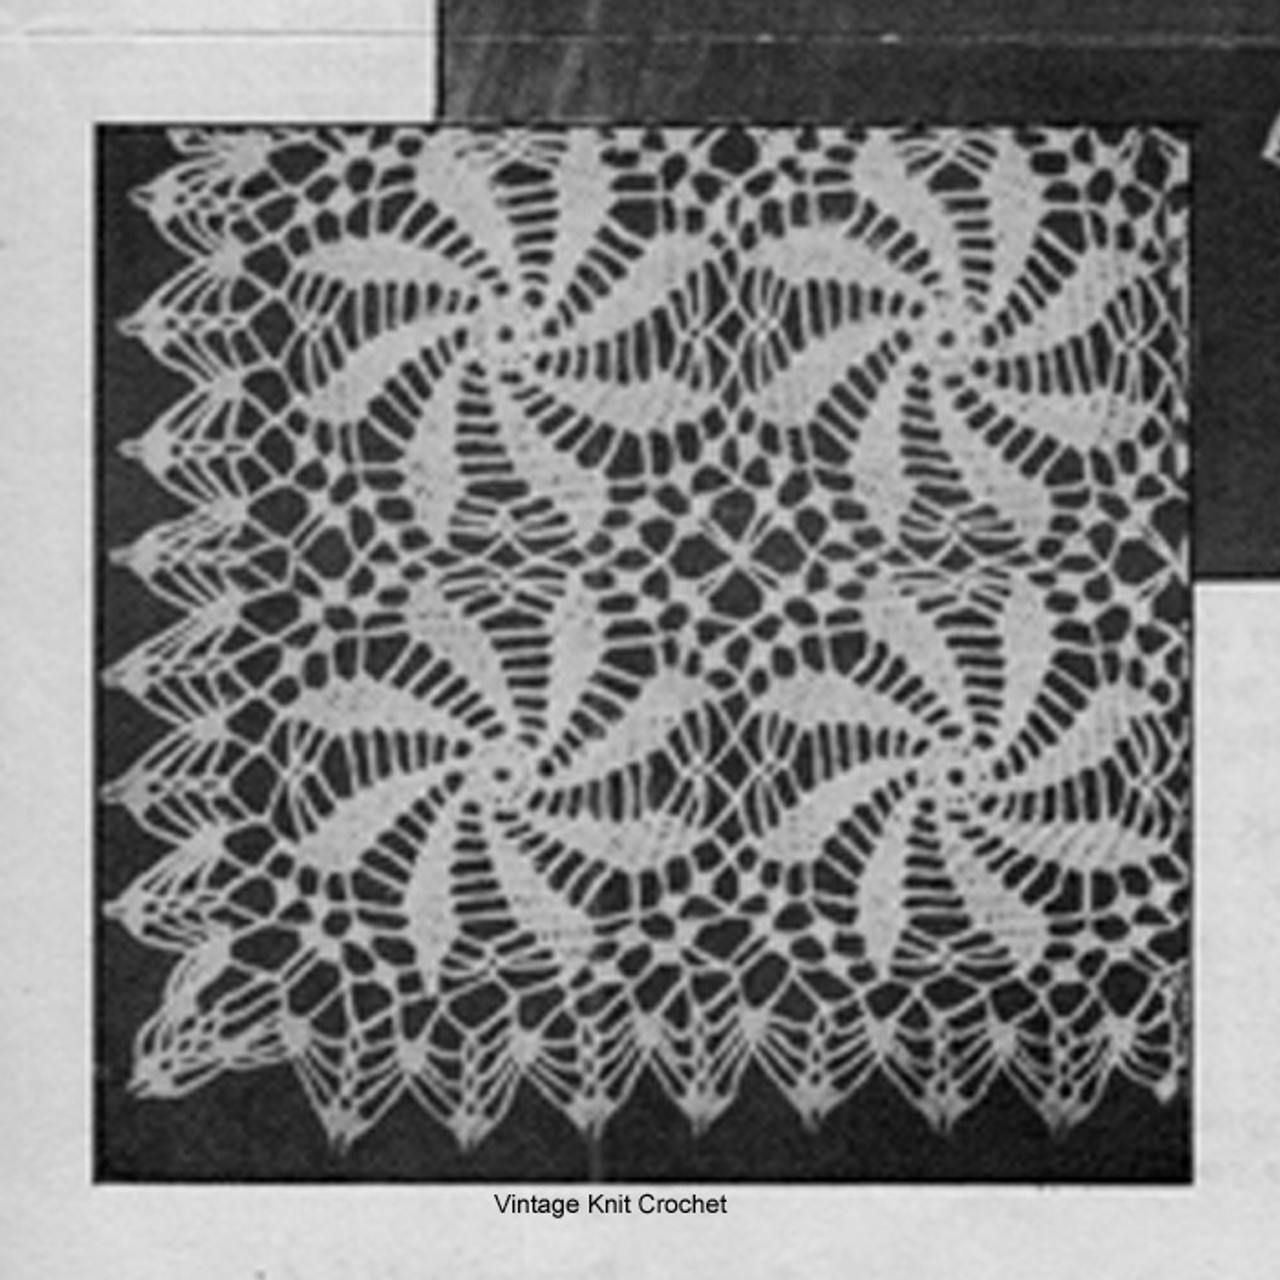 Joined pinwheel medallions for crochet tablecloth pattern